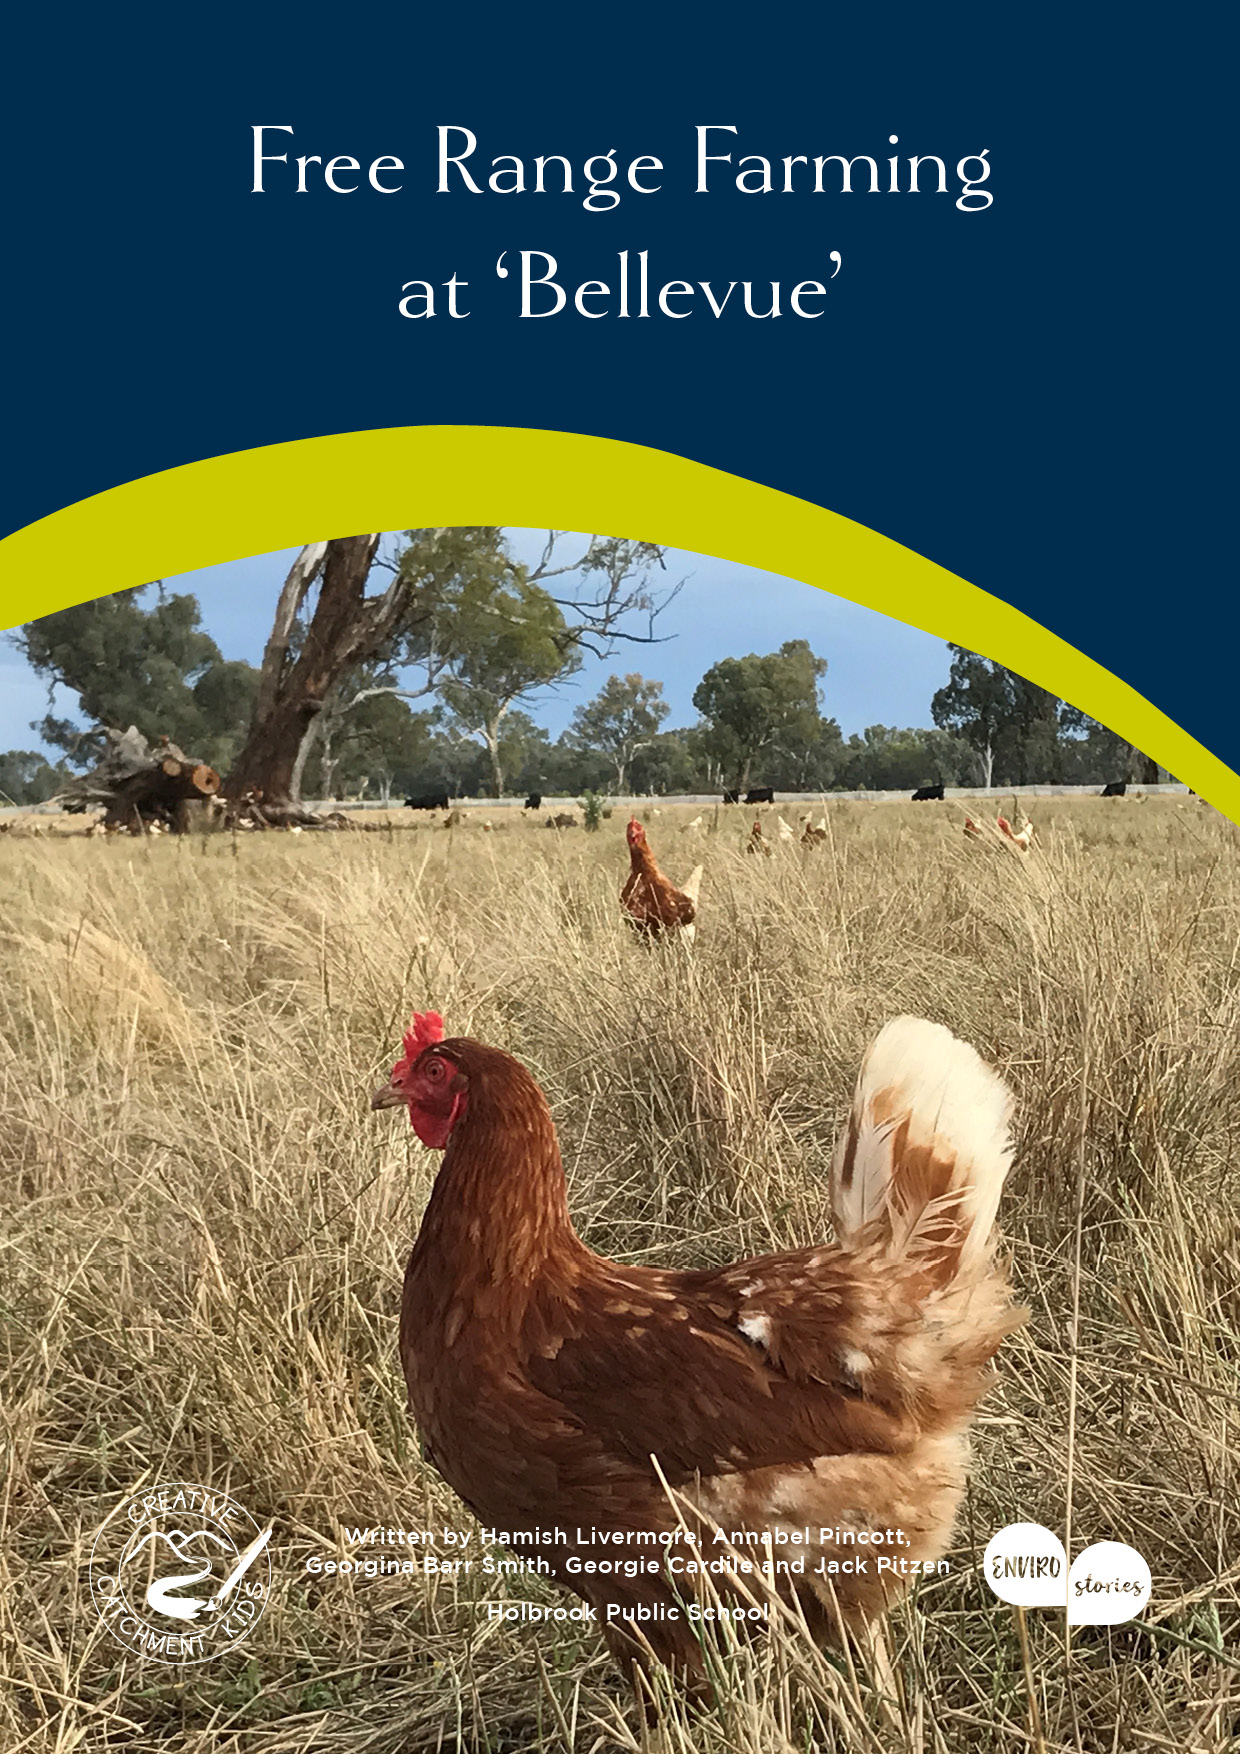 Free Range Farming at 'Bellevue'